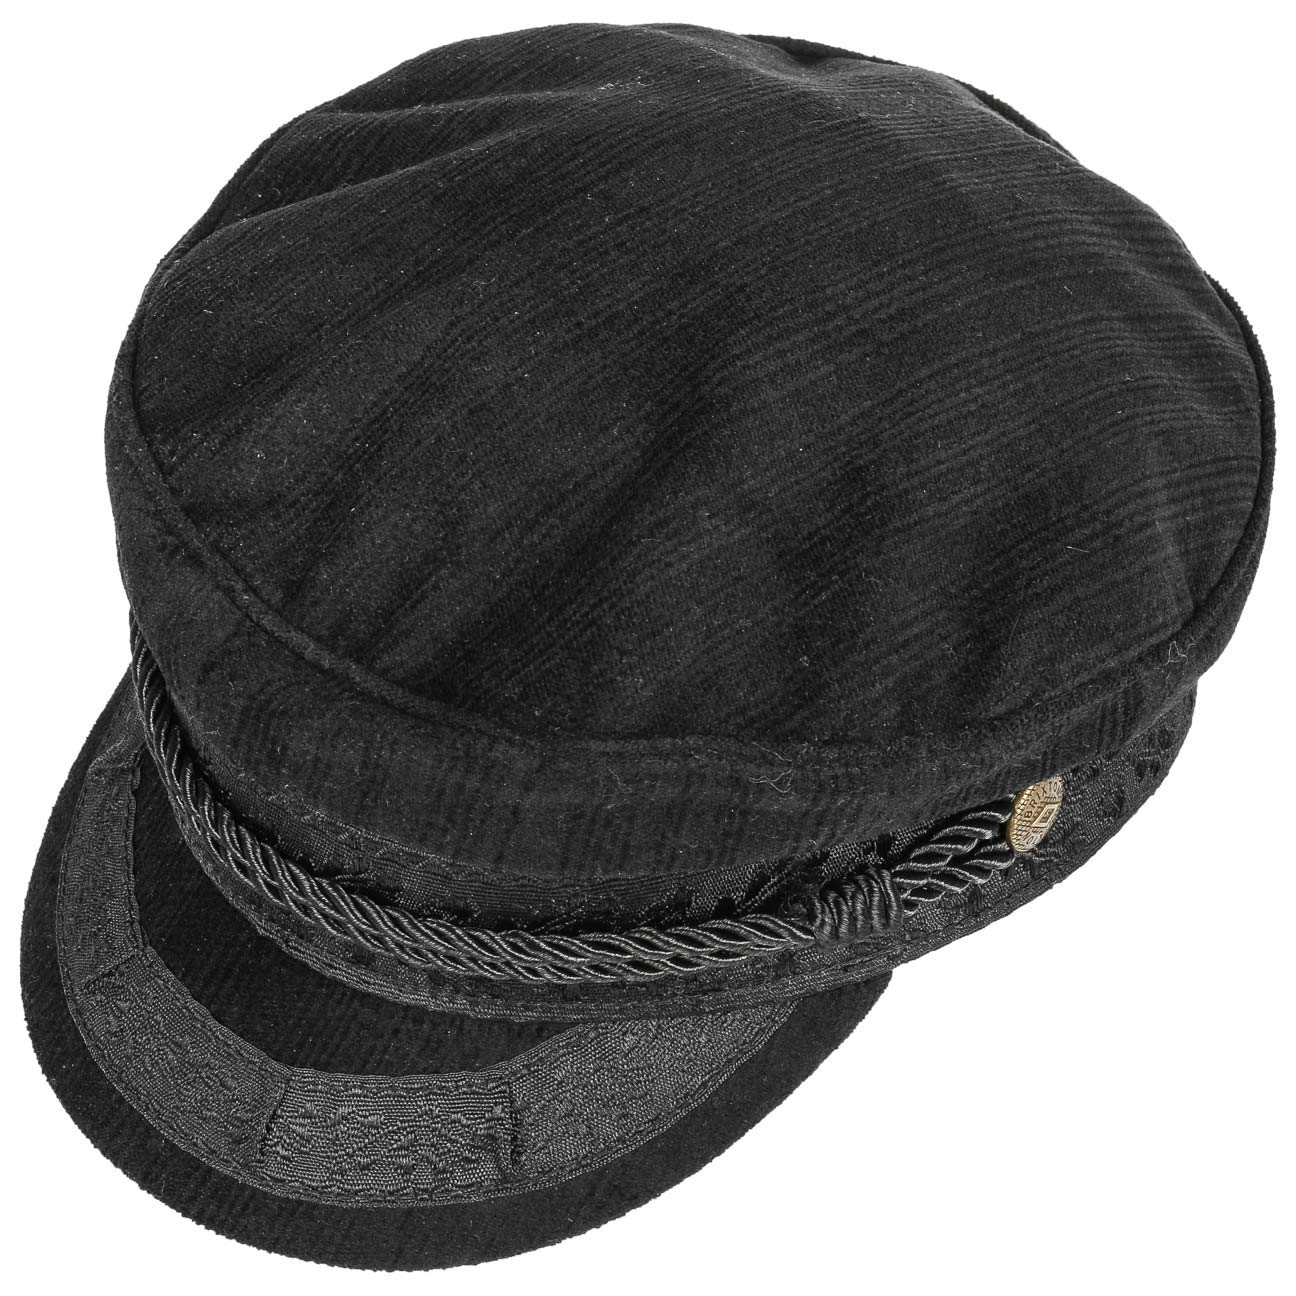 Brixton Women s Albany Cap Black Black MD (7 1 4)  Amazon.ca  Clothing    Accessories 1e8211e4312c